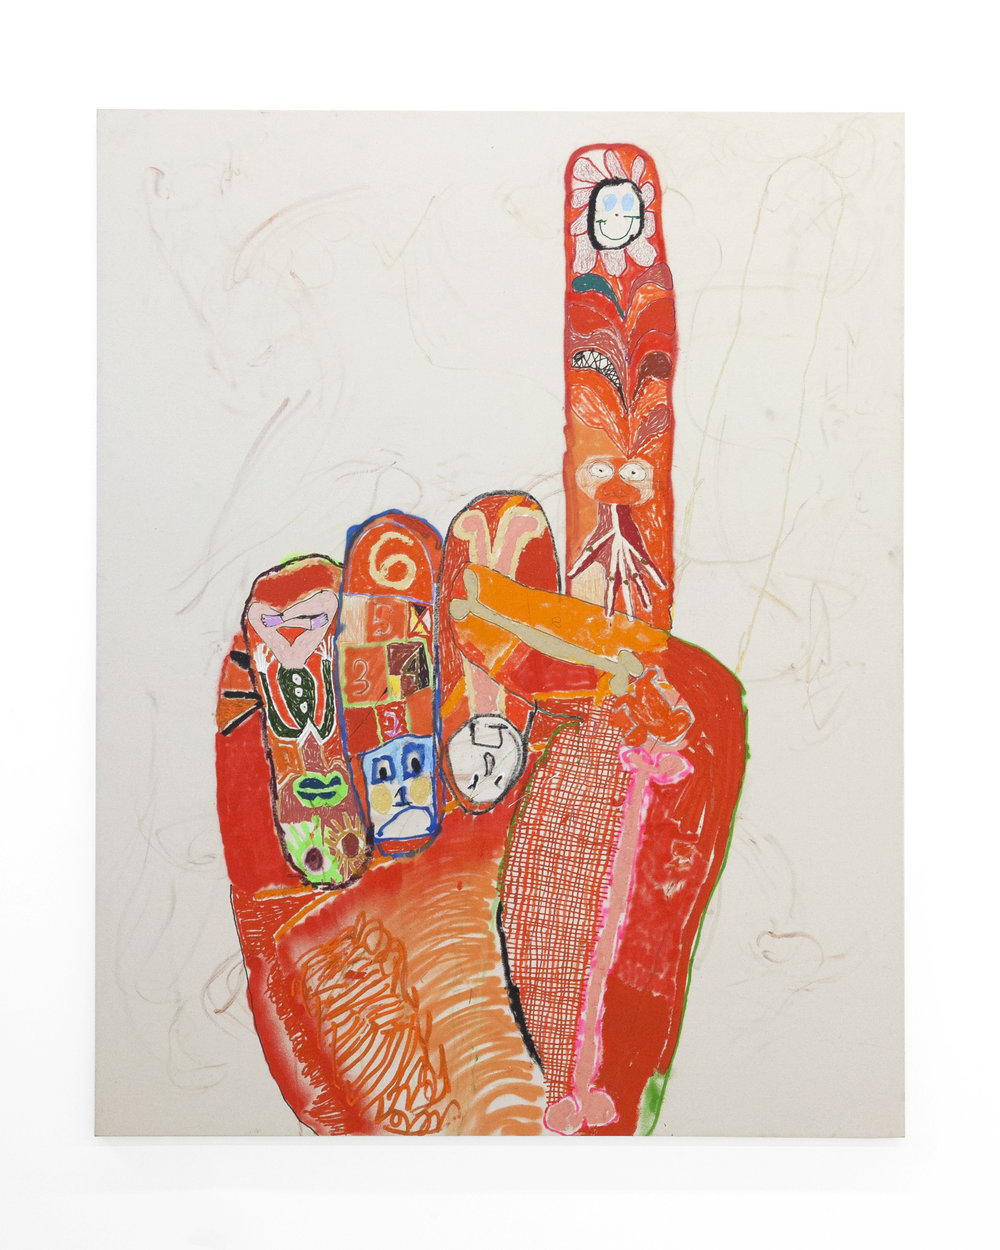 "Michael Swaney "" Finger Family (14th Hand)""  Acrylic, Spray Paint, Oil Bar and Oil Pastel on Canvas. 74.8 x 59.06 Inches.  190h x 150w cm. 2018."